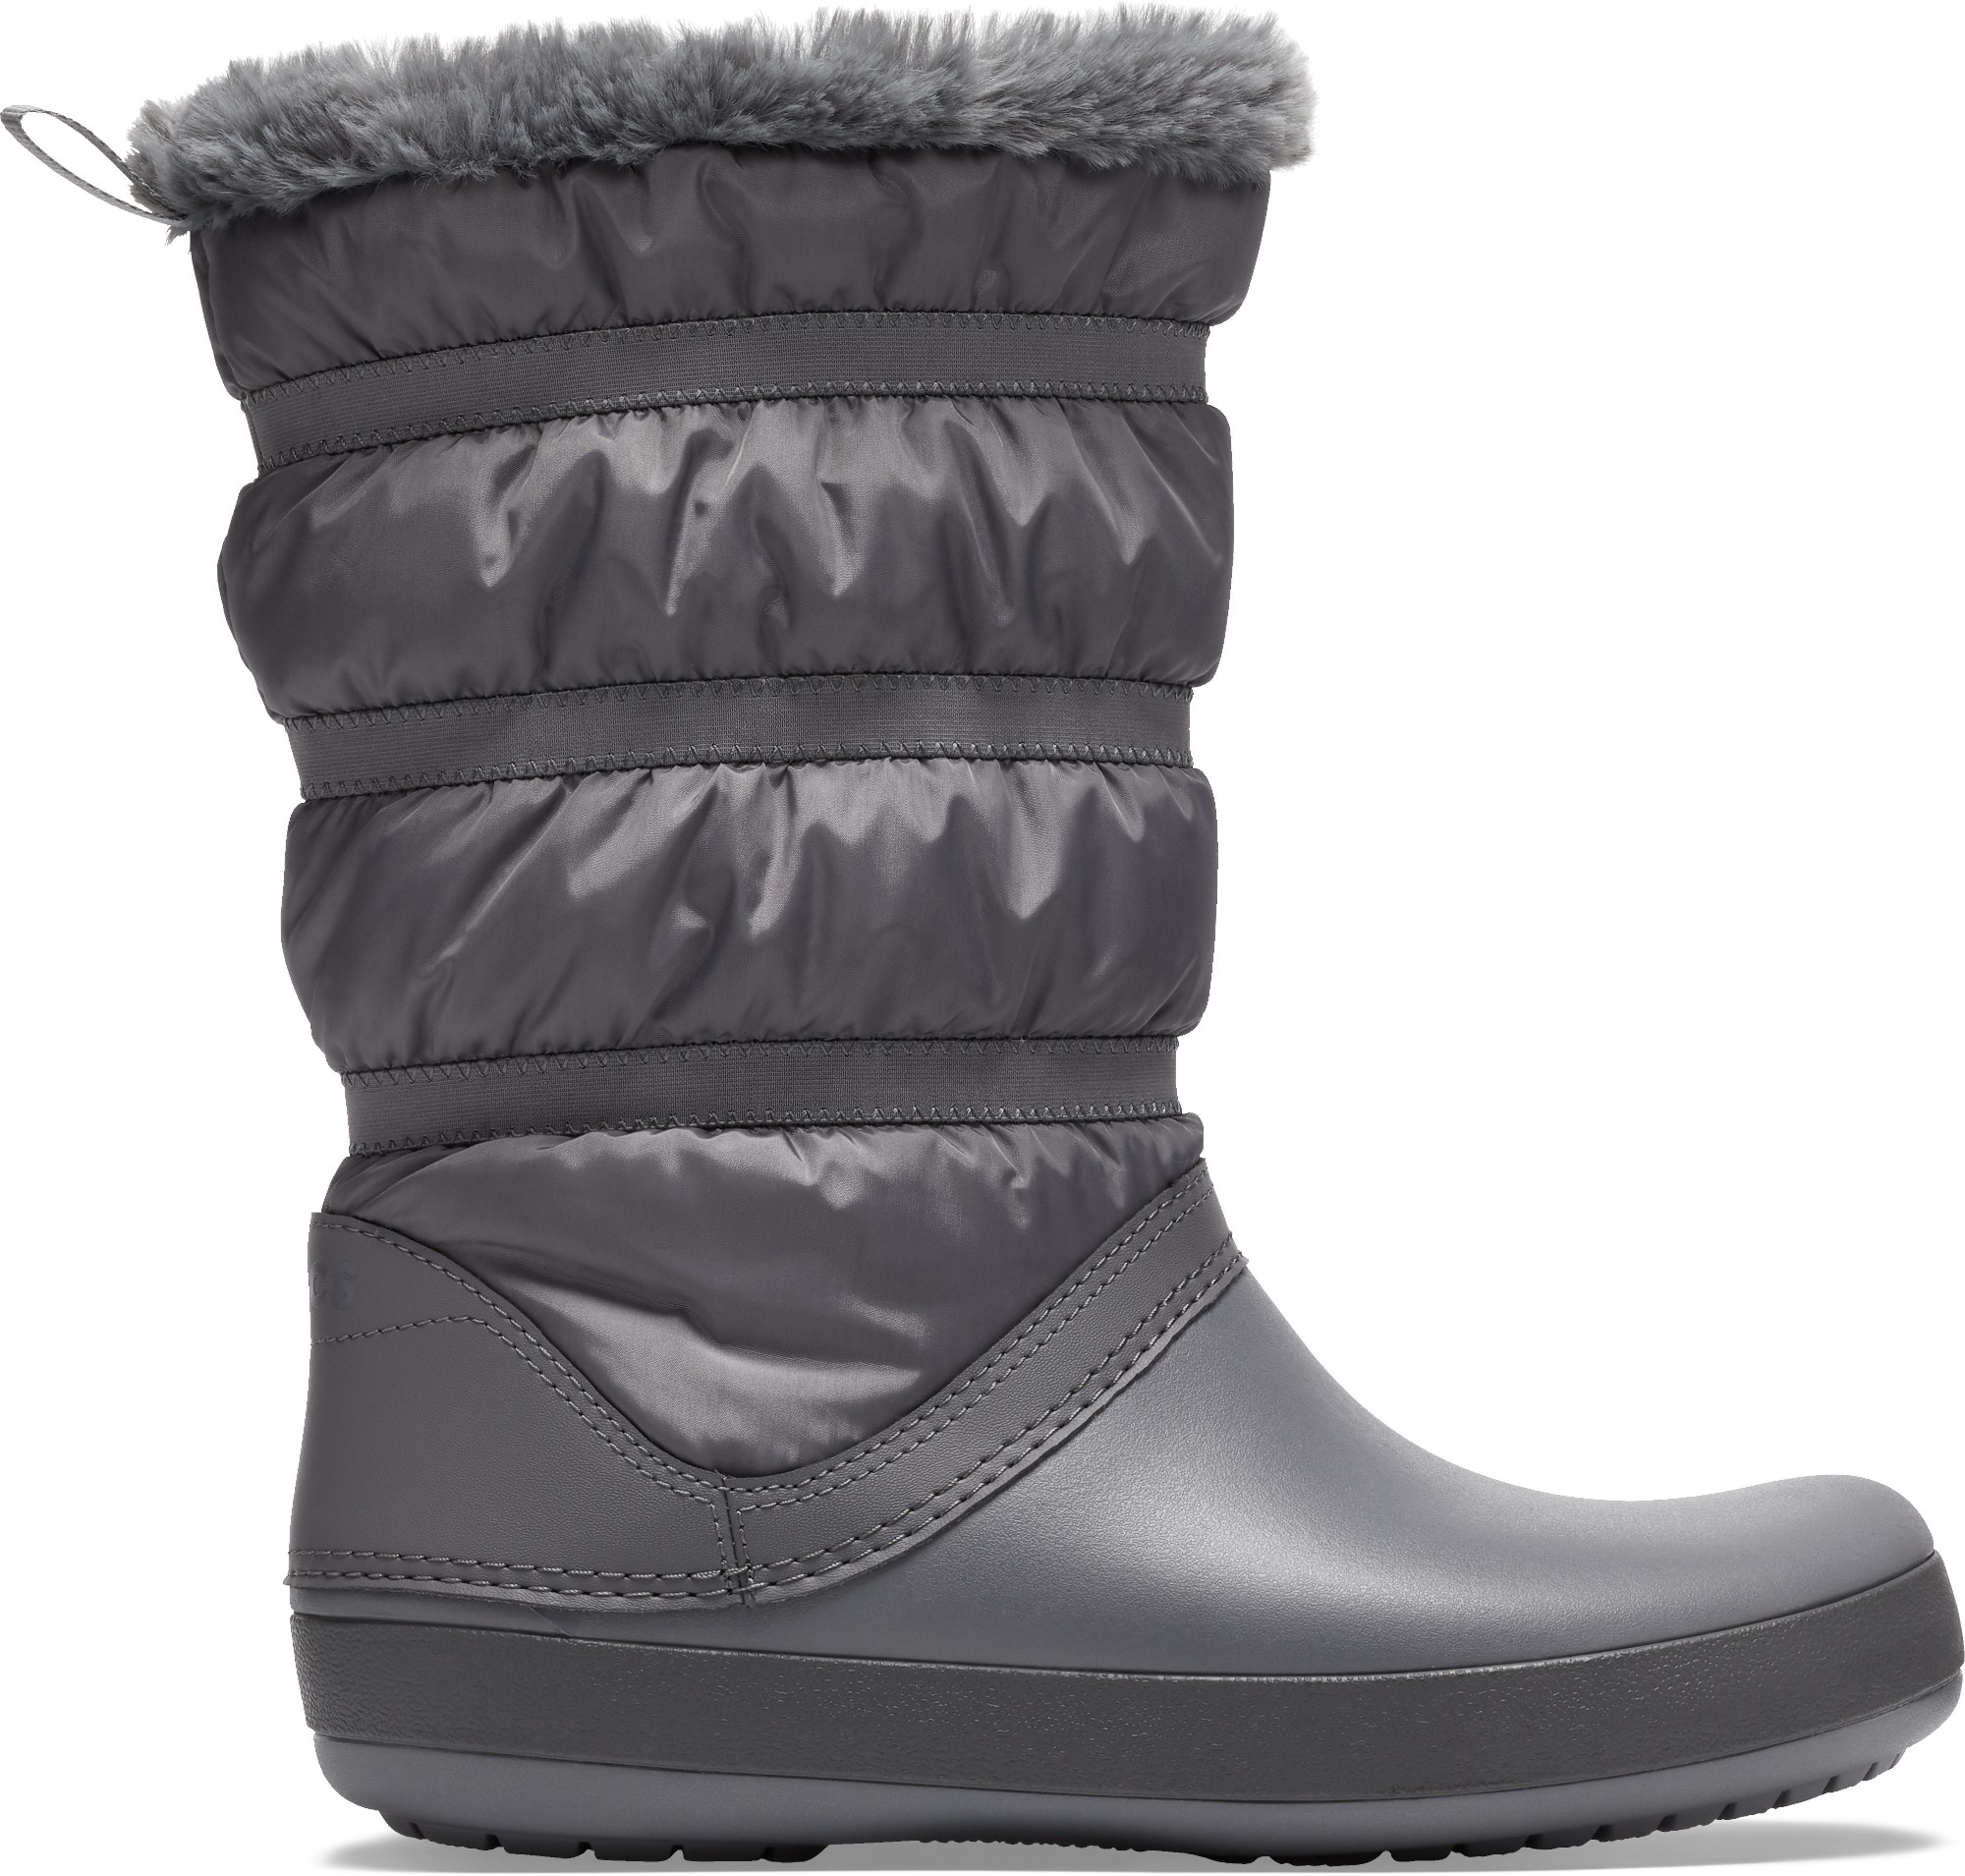 Crocs™ Women's Crocband Winter Boot Charcoal 42,5